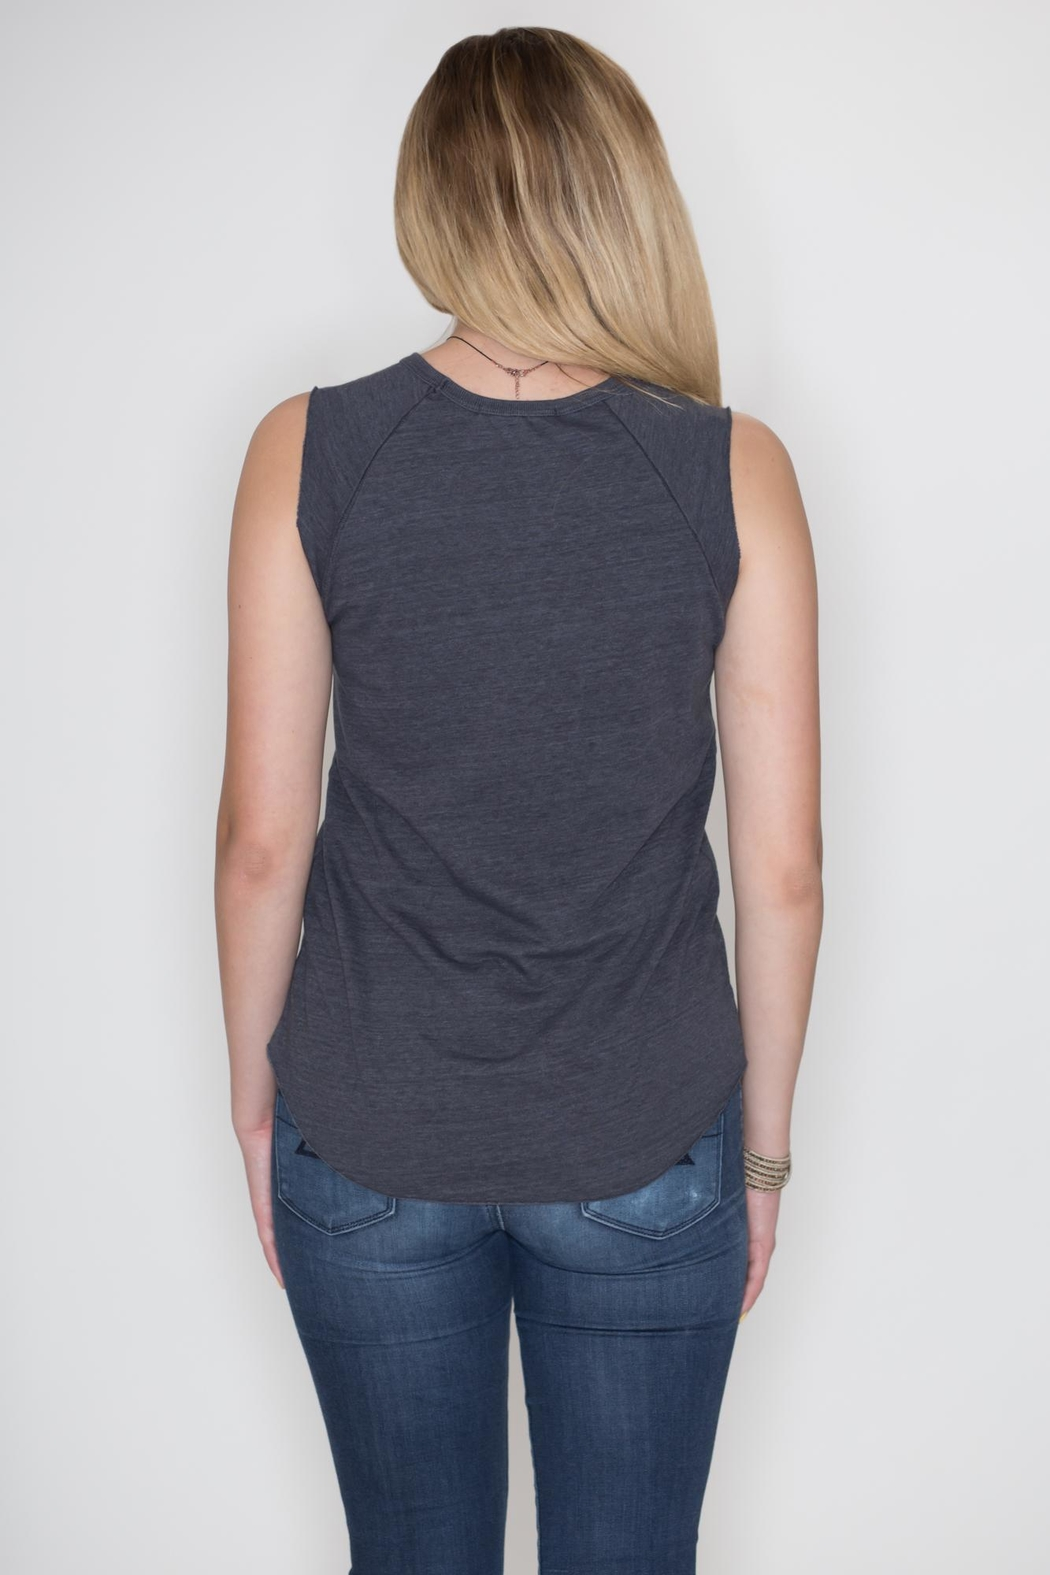 Junk Food Clothing Rock Tank Top - Side Cropped Image